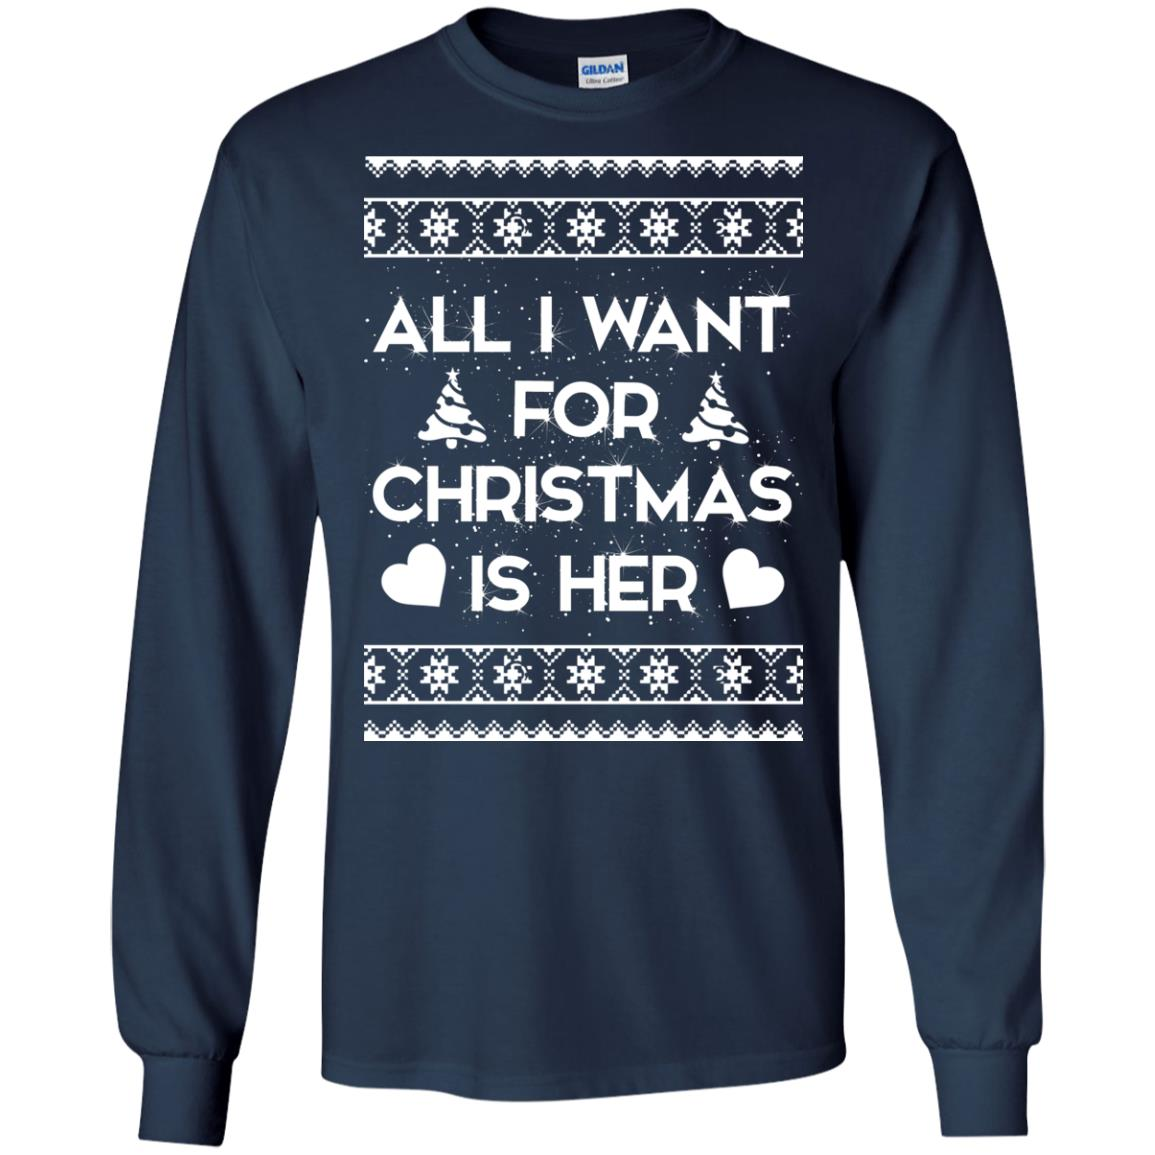 image 2385 - Couple Sweatshirt: All I Want For Christmas Is Her ugly Sweater, Shirt